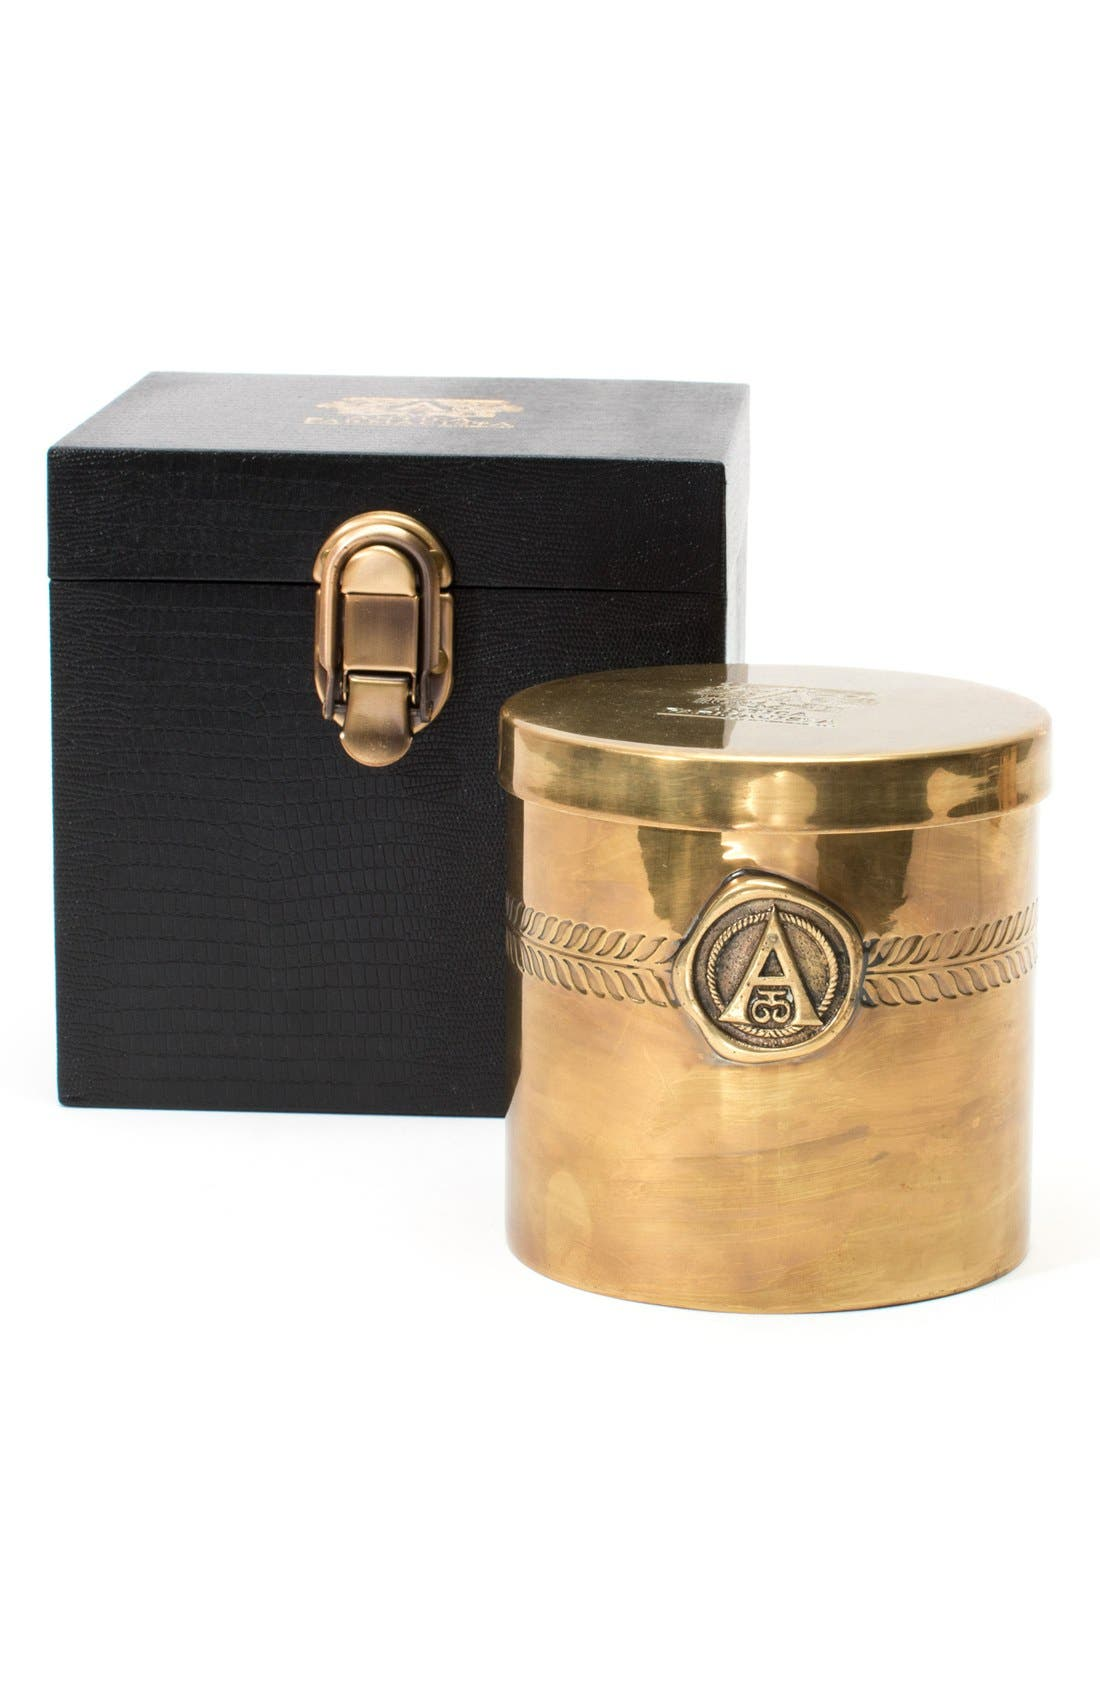 Champagne Black Label Three-Wick Brass Candle,                             Main thumbnail 1, color,                             No Color